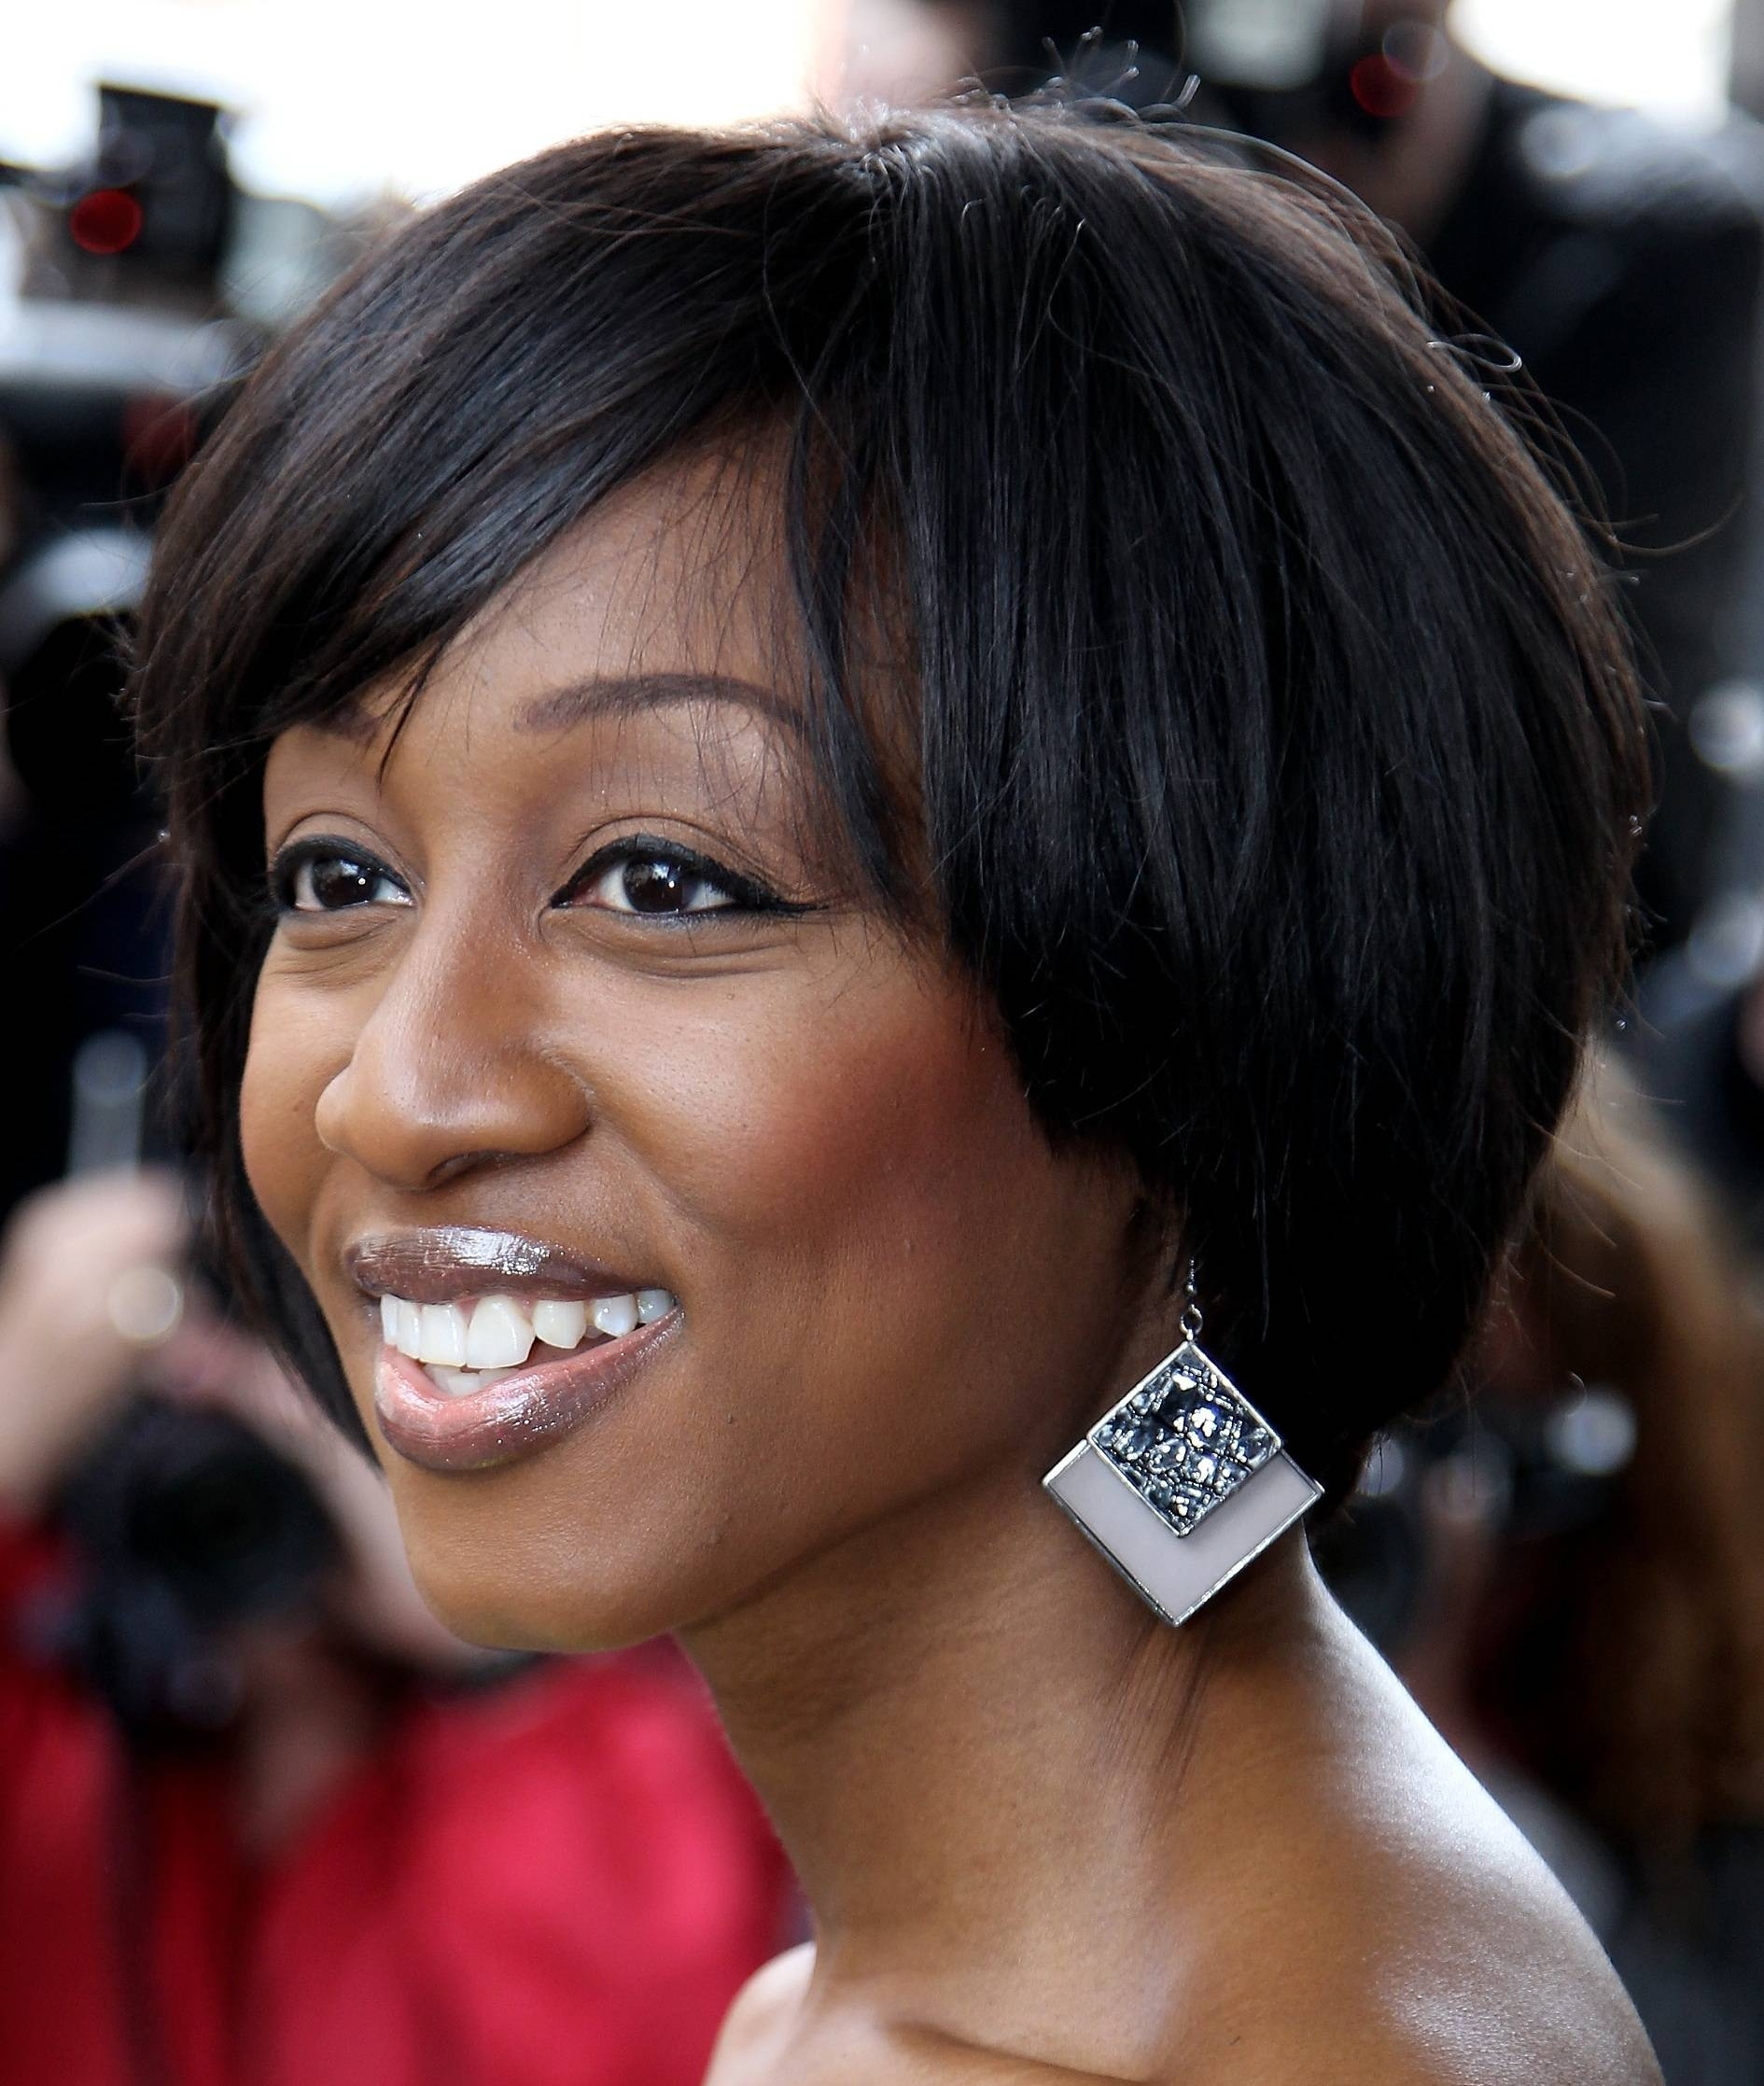 Short Weave Hairstyles Pictures Images For Nice Short Weaves Intended For Short Weaves For Oval Faces (View 24 of 25)